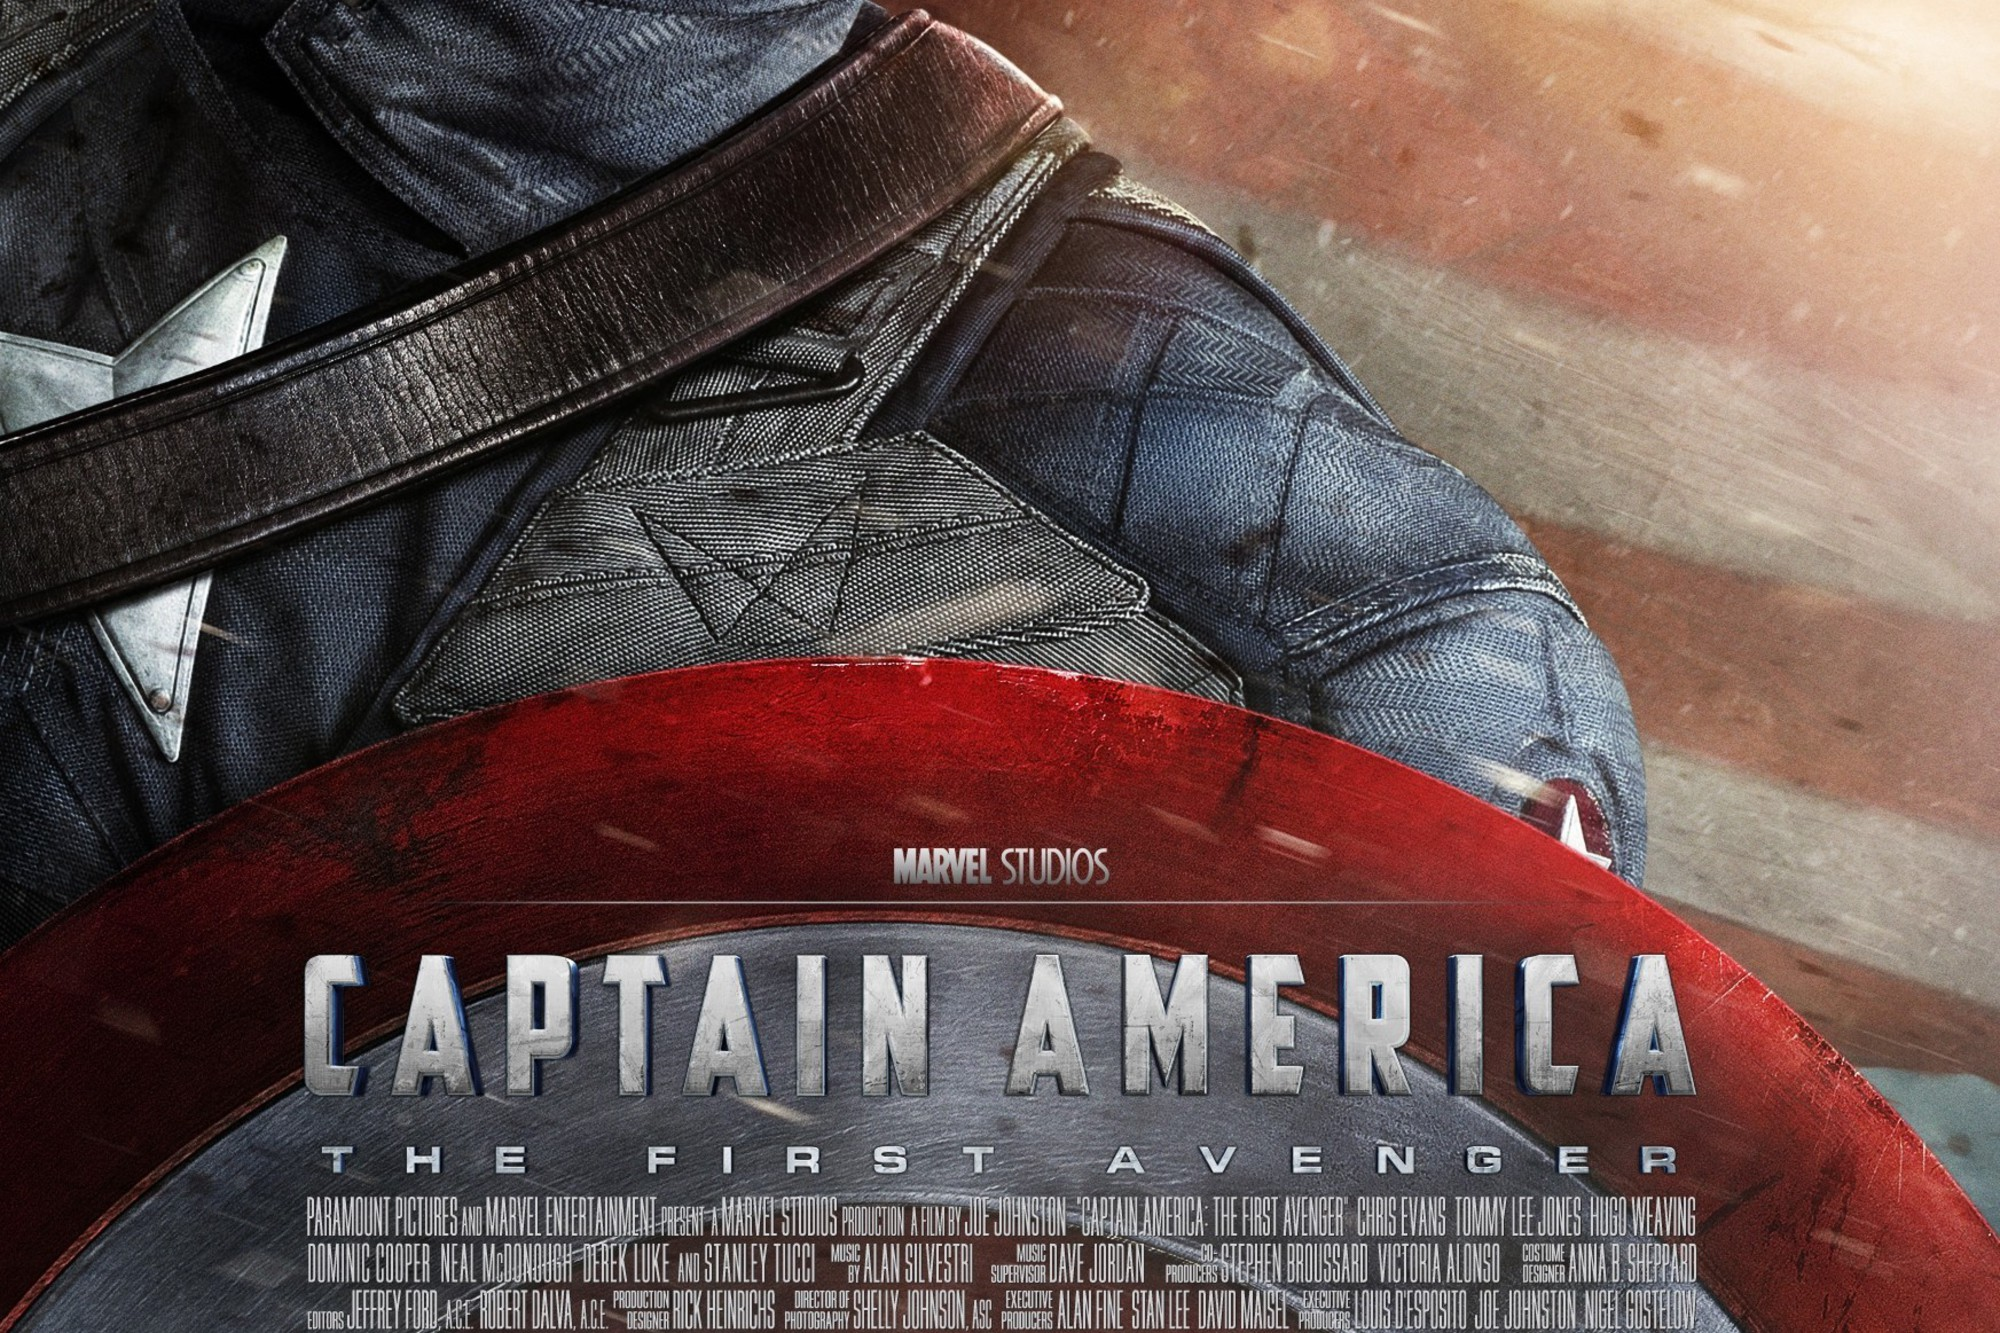 Evans Movie Posters America The First Avenger Wallpaper